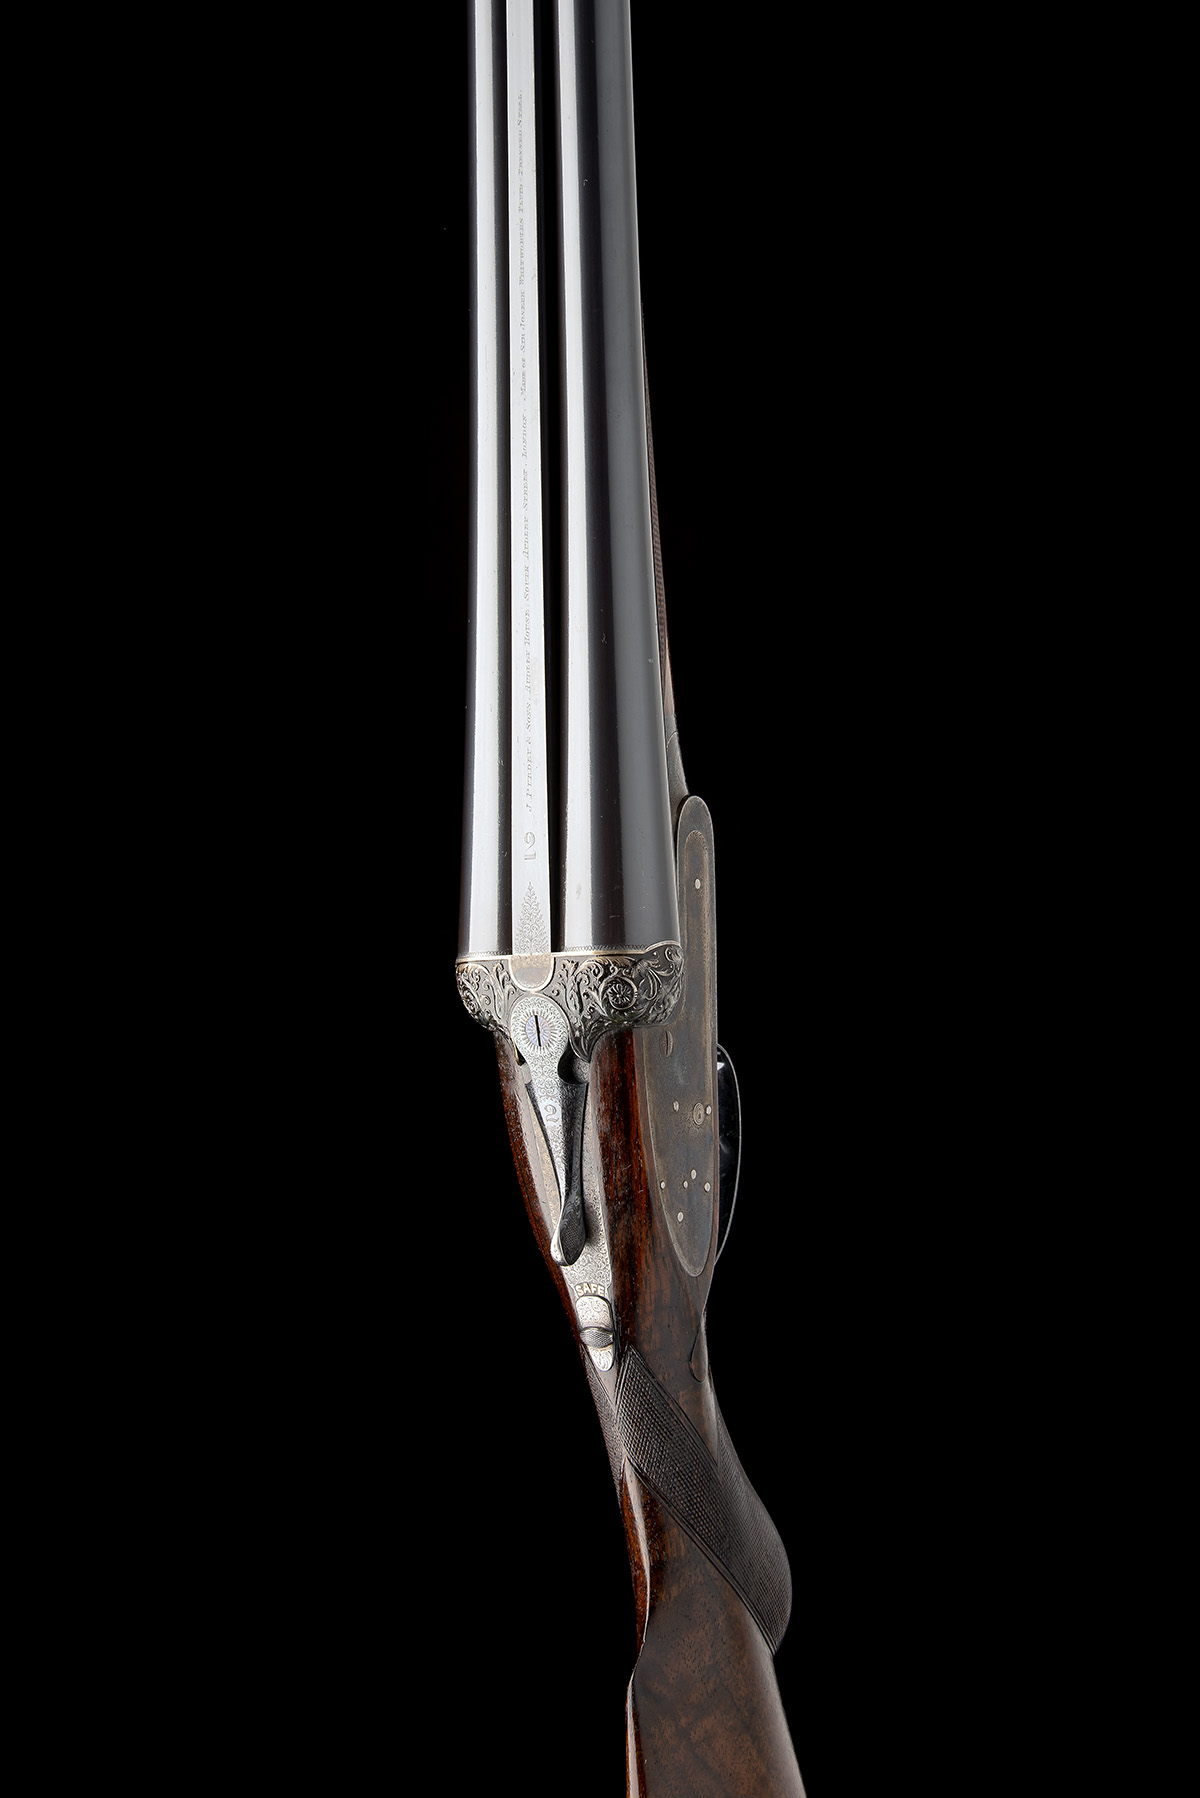 J. PURDEY & SONS A FINE 12-BORE (3IN.) SELF-OPENING SIDELOCK EJECTOR WILDFOWLING GUN, serial no. - Image 6 of 11